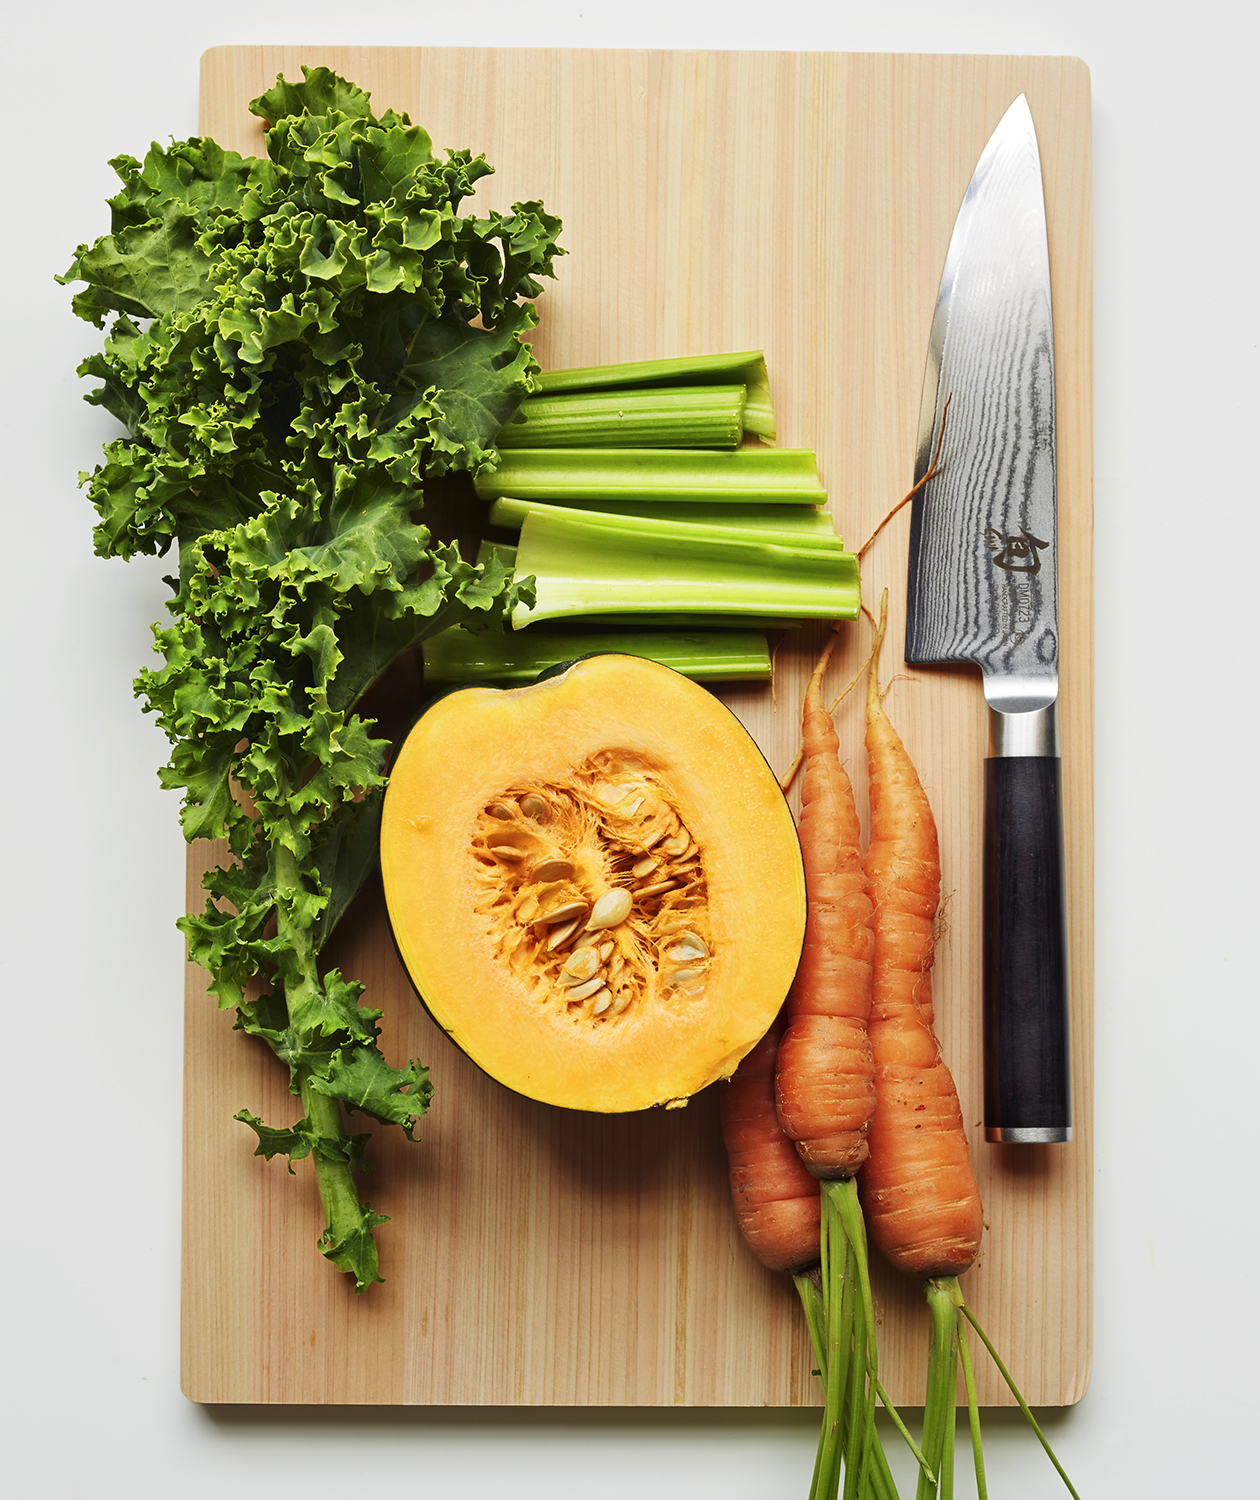 cutting-board-knife-vegetables